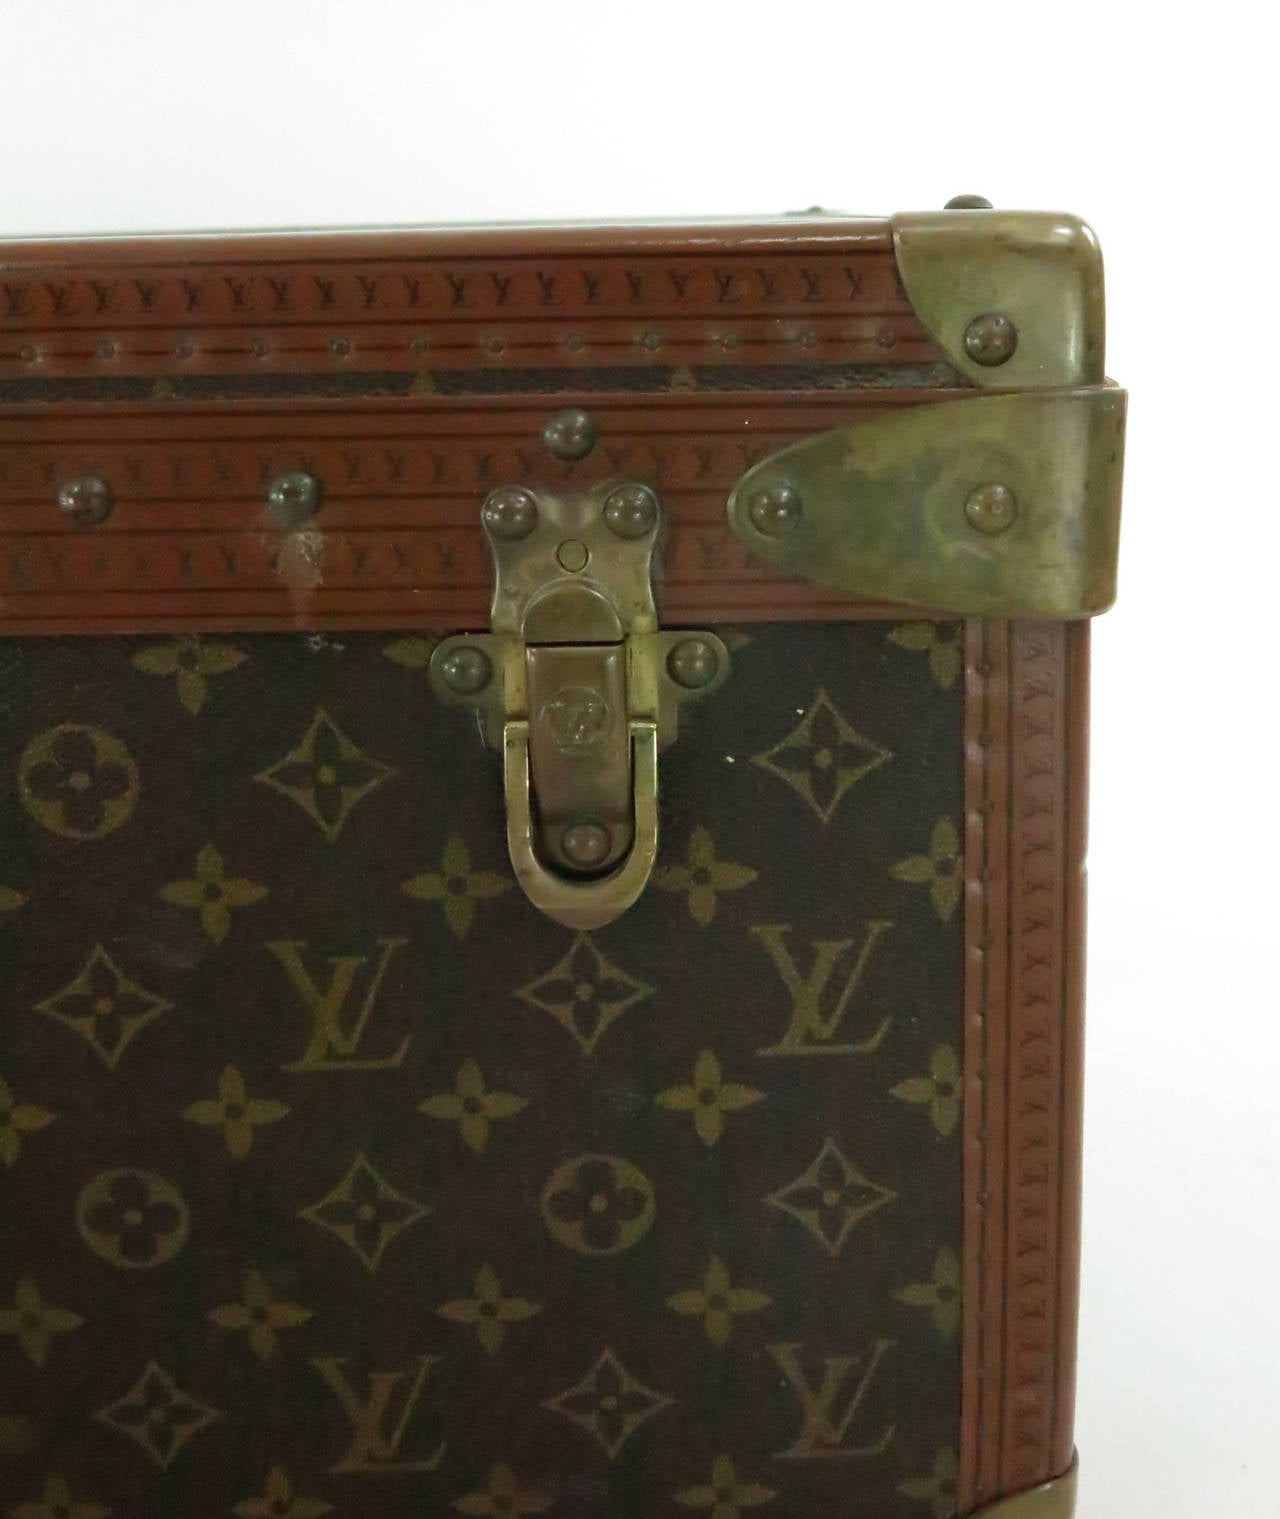 Louis Vuitton Alzar 80 monogram hardside suitcase/trunk In Excellent Condition For Sale In West Palm Beach, FL